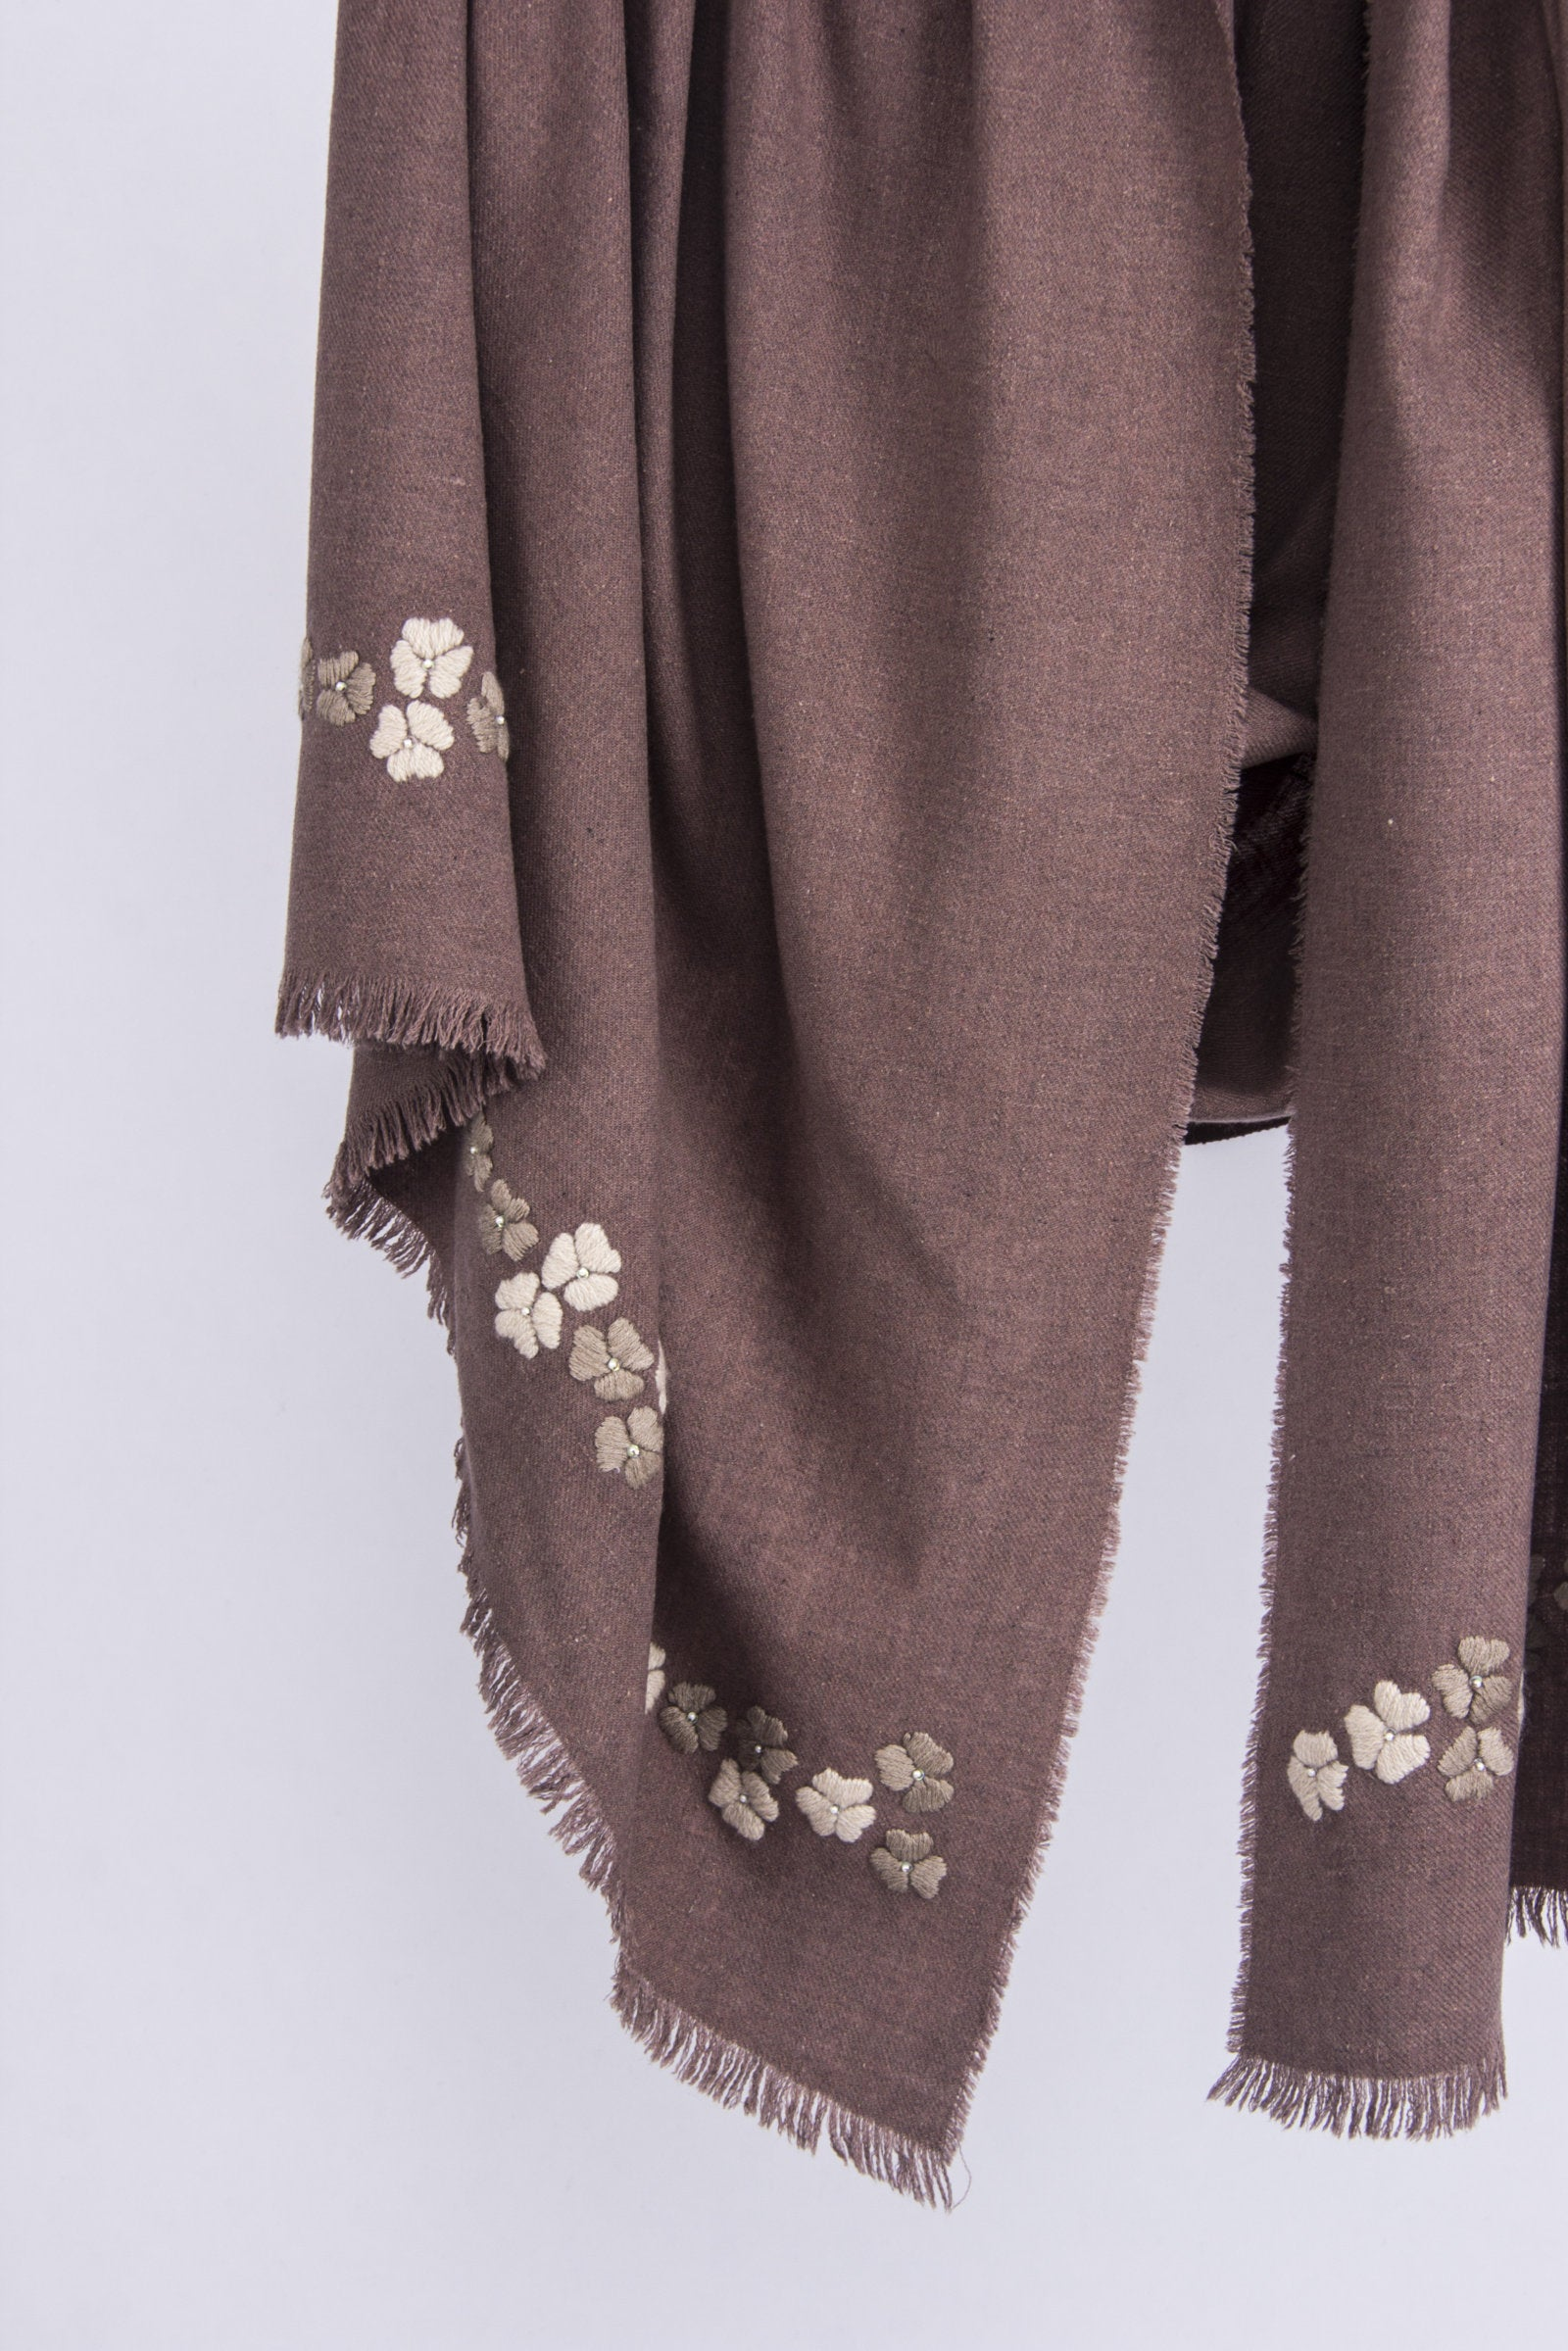 PASHMA CASHMERE EMBROIDERY KATERINA FLOWERS SCARF